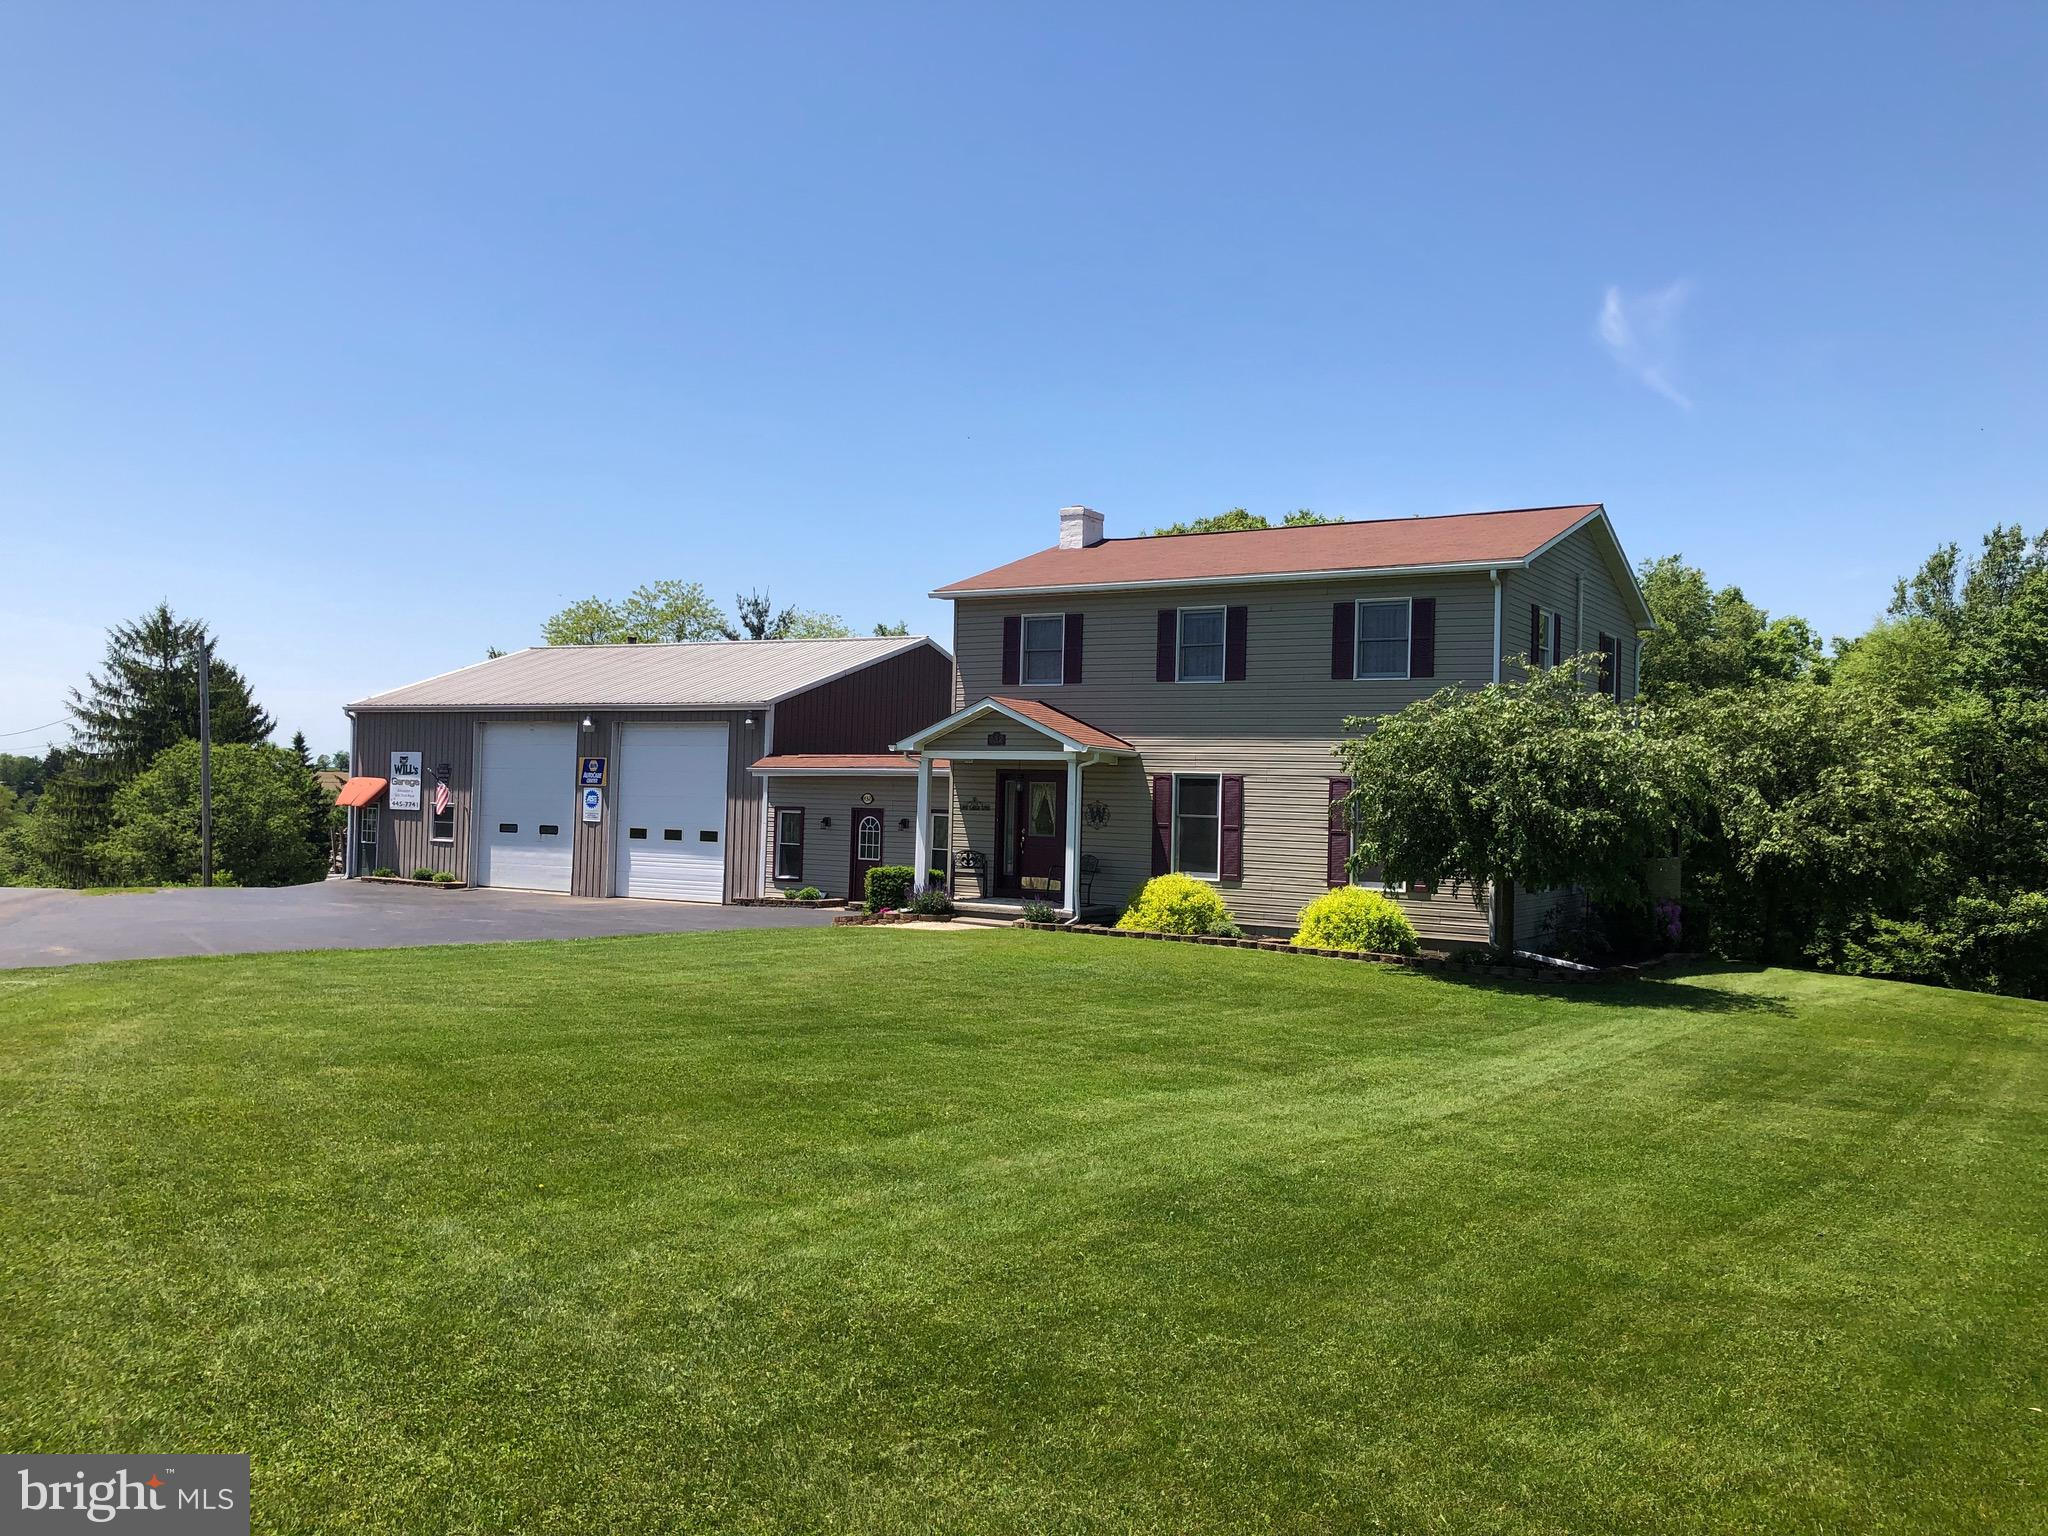 432 BYERS ROAD, SOMERSET, PA 15510